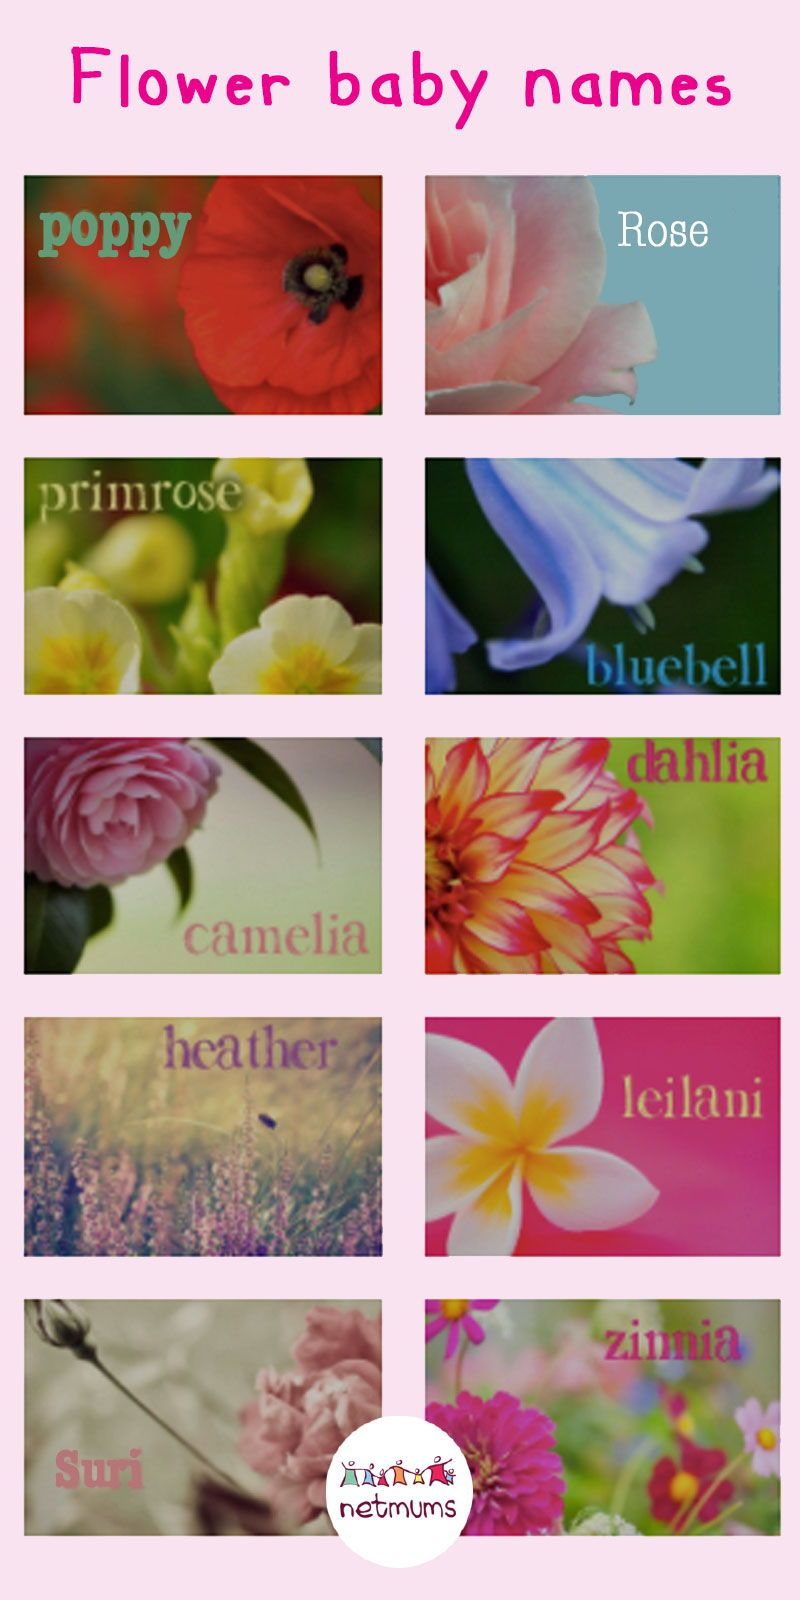 Flower baby names (With images) Baby names flowers